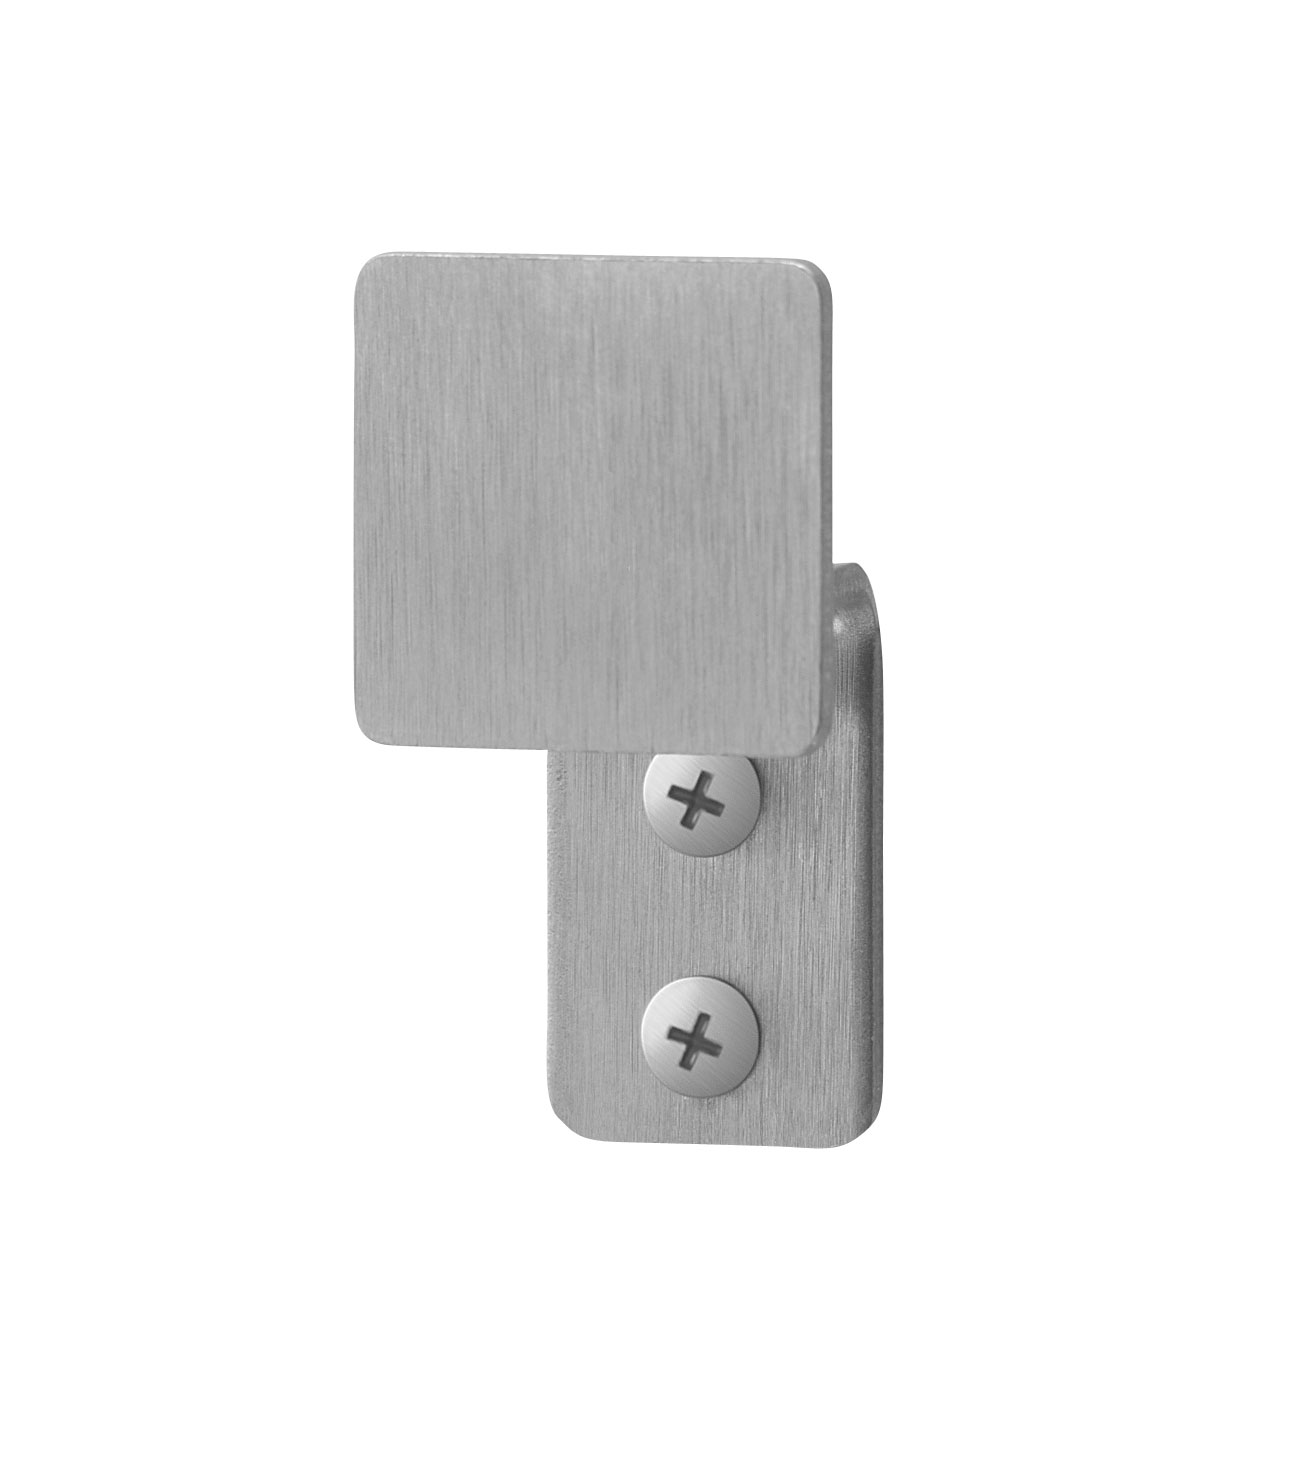 Bradley 917 Stainless Steel Clothes Hook